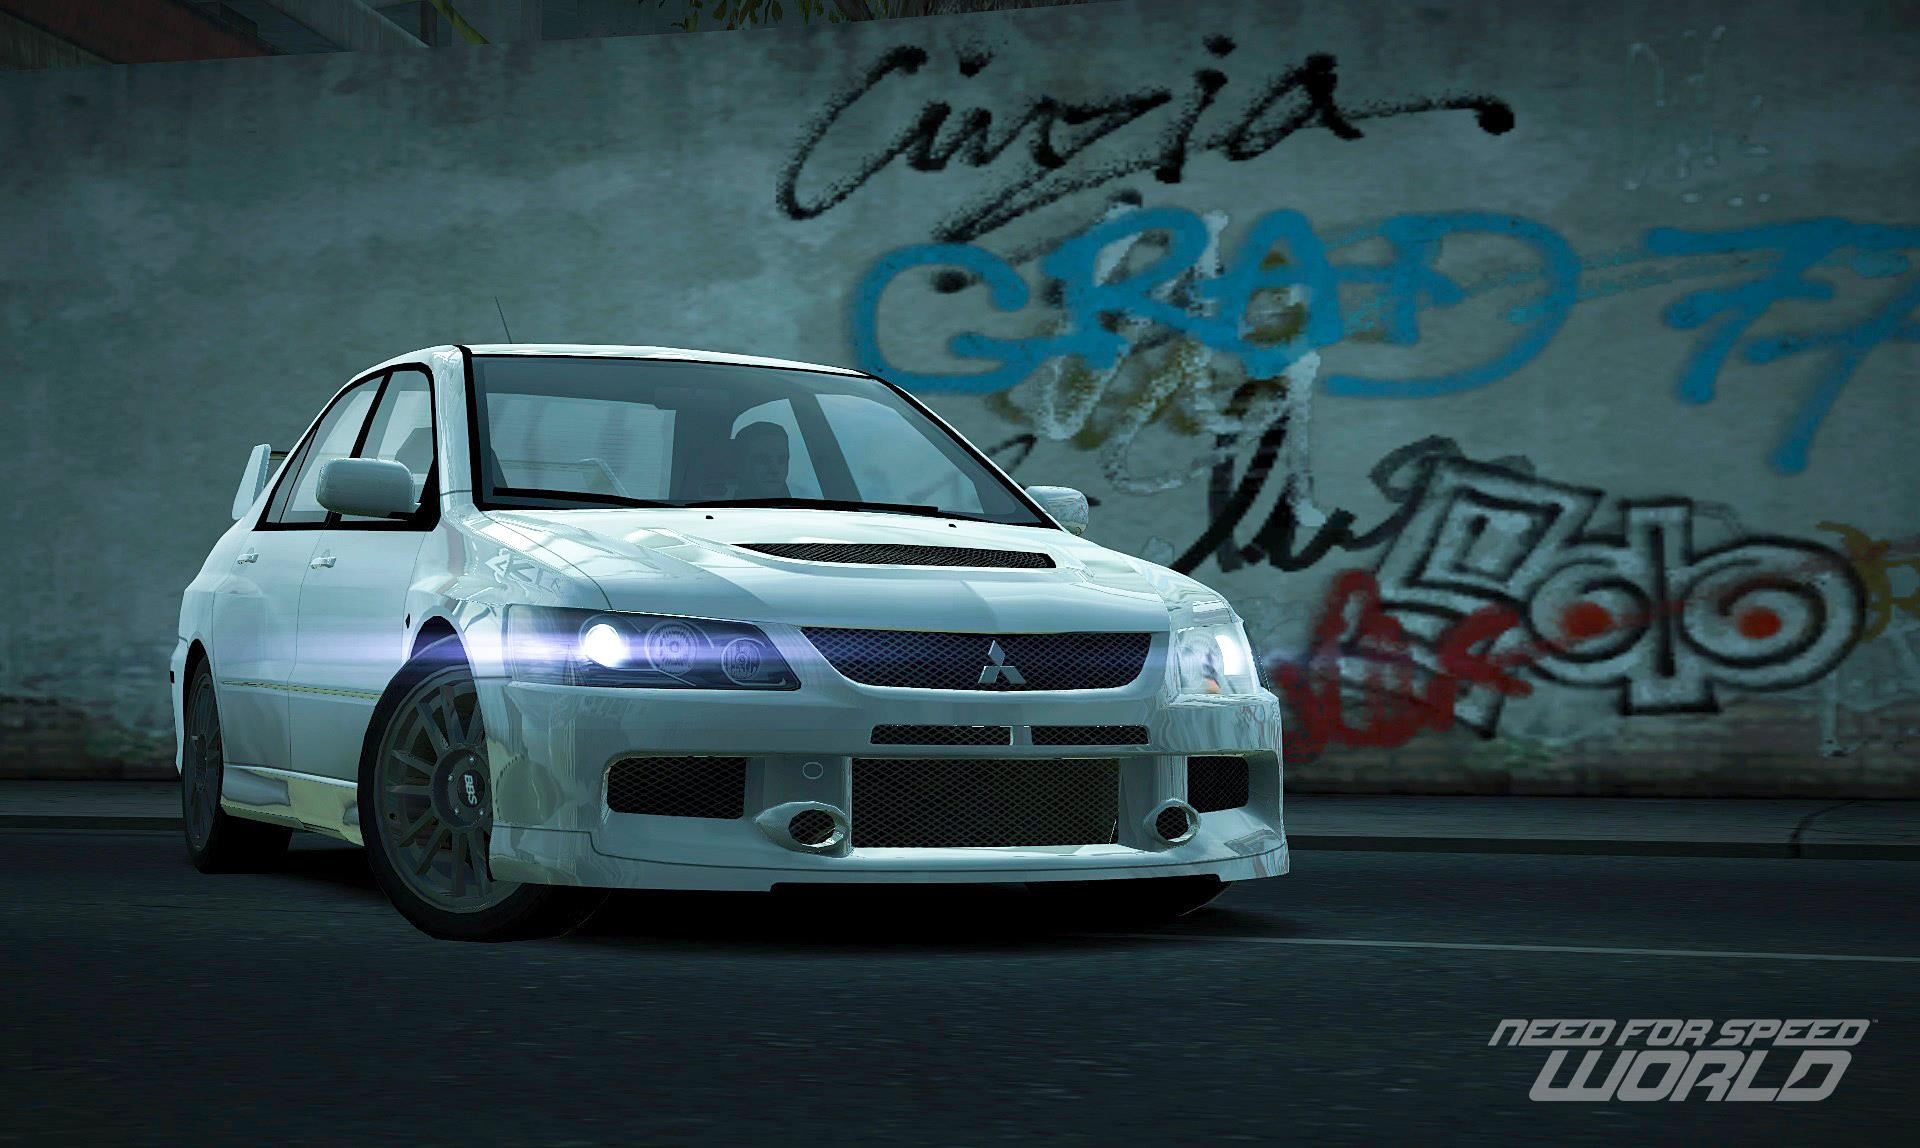 Mitsubishi Lancer Evolution Ix Mr Edition Nfs World Wiki